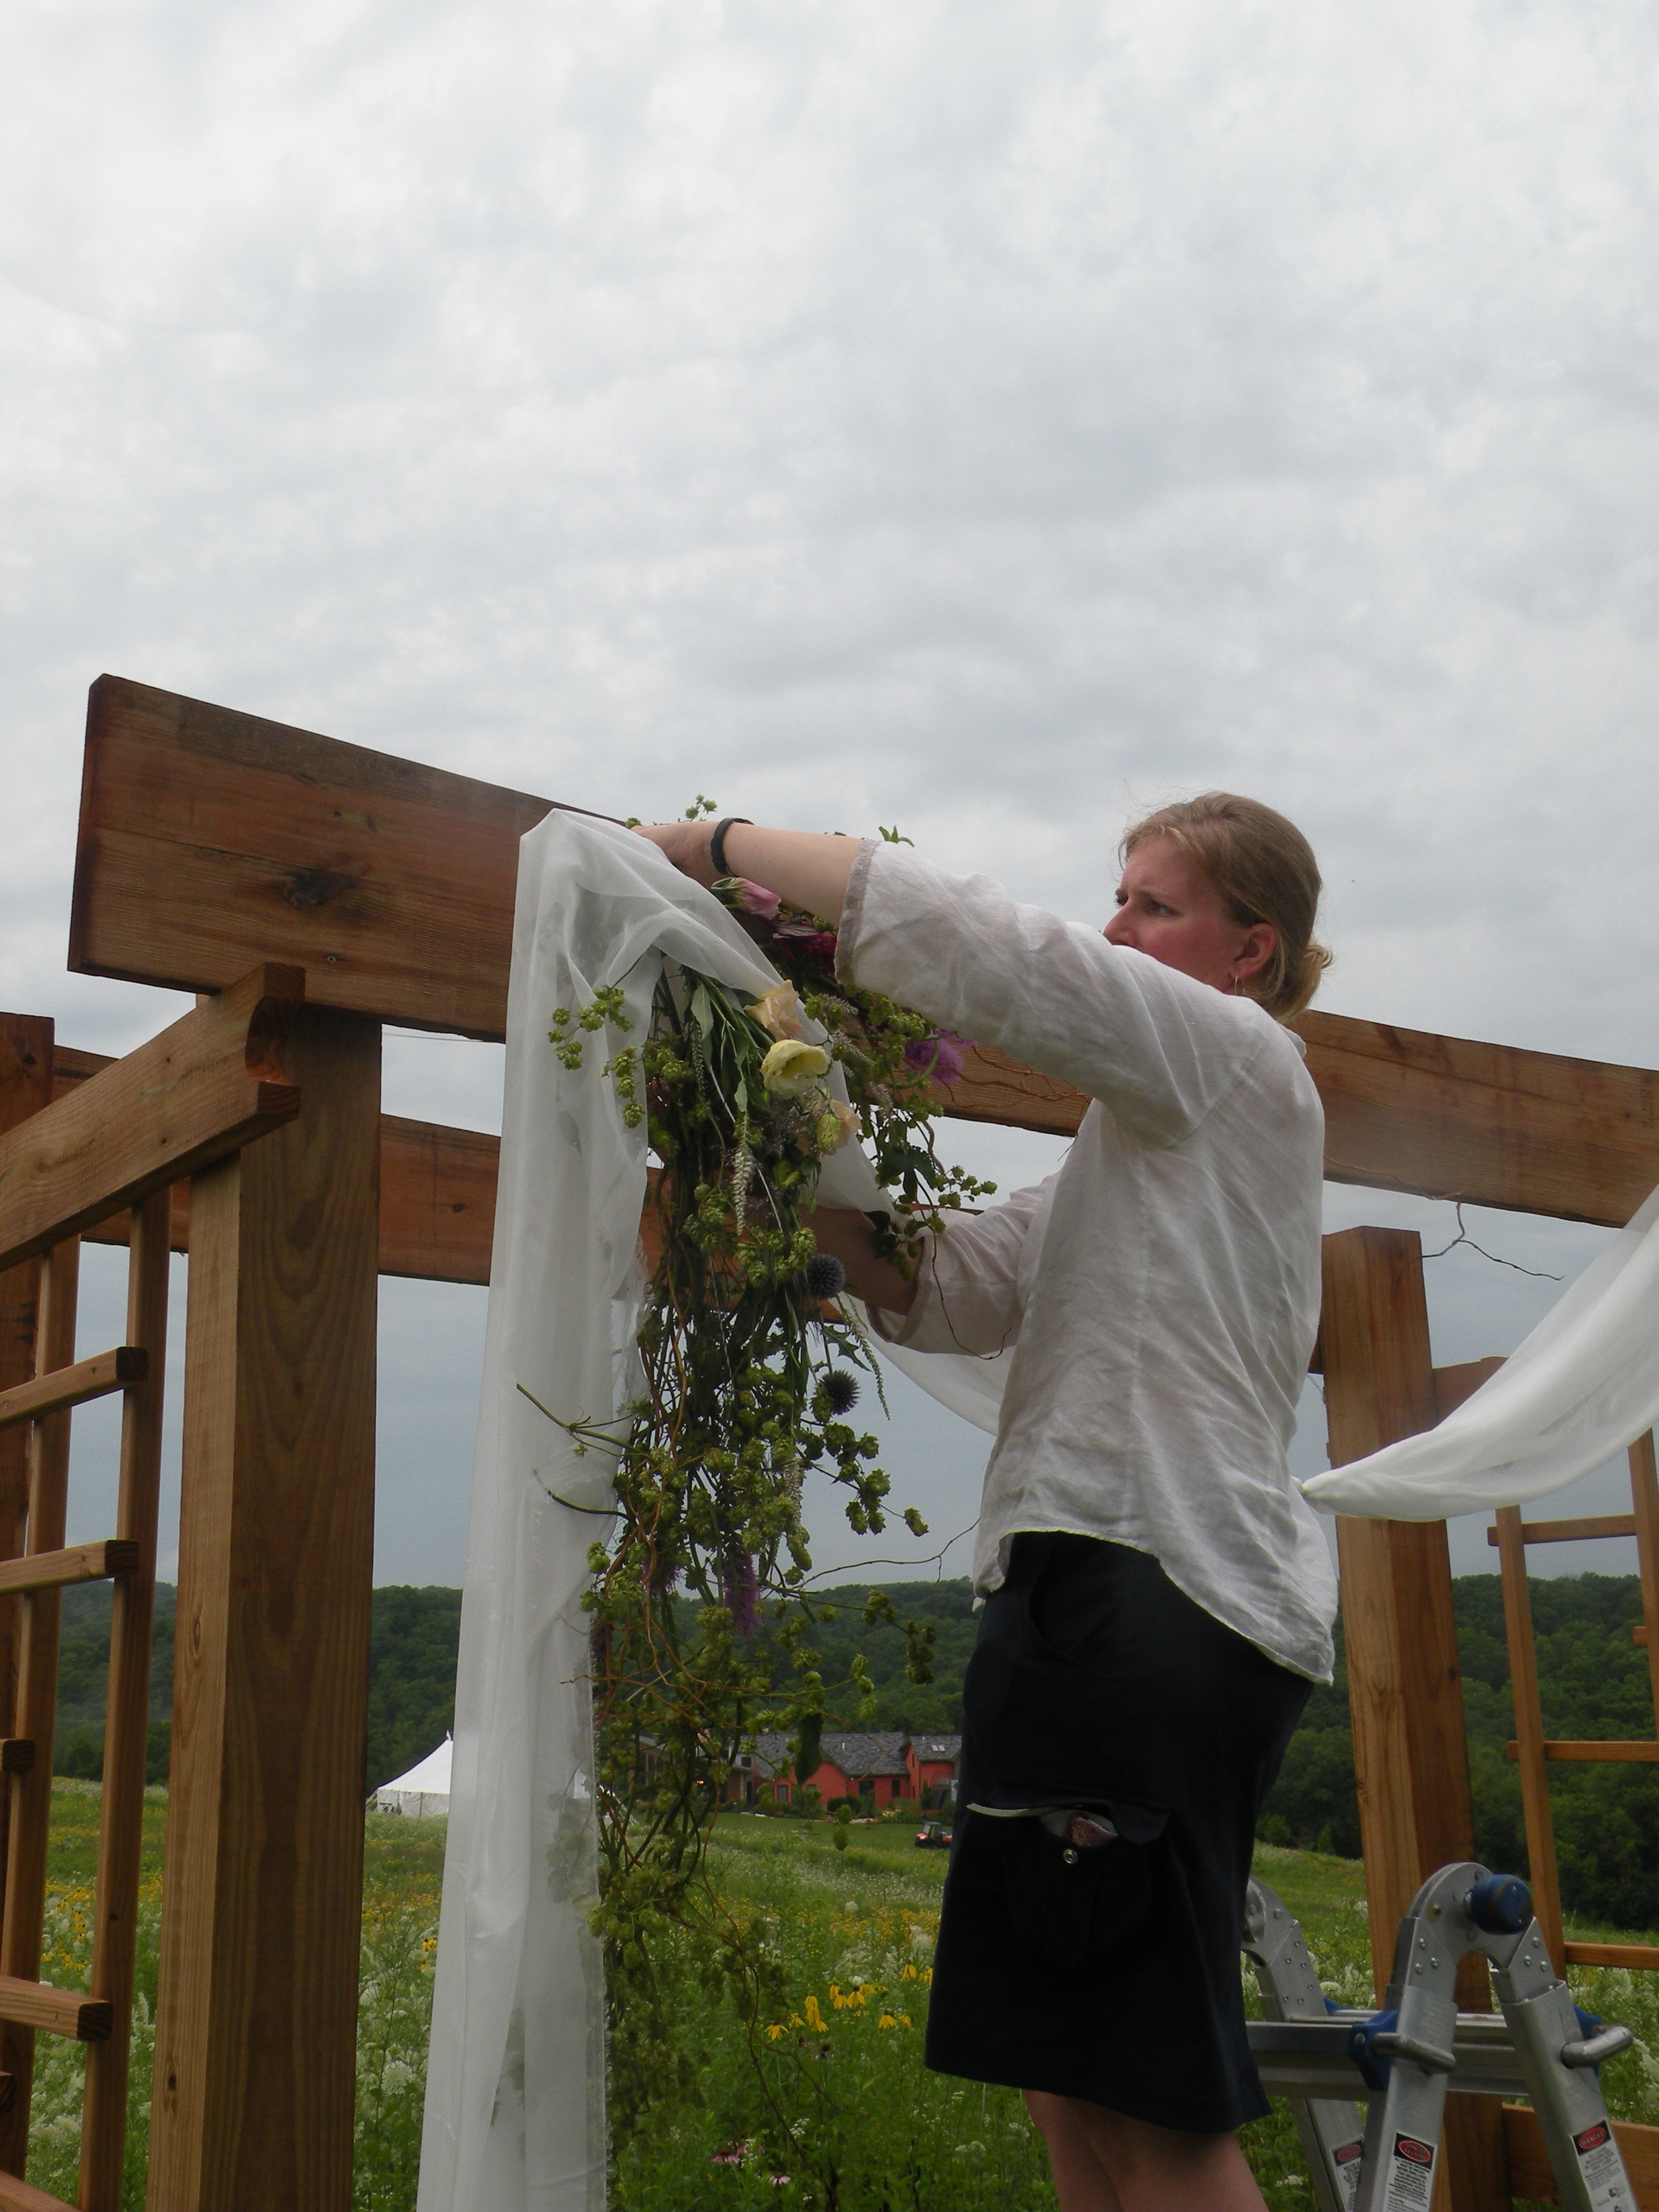 Mary Jo, helping install arbor floral decor, just before the next round of thunderstorms. Photo by Erin Schneider